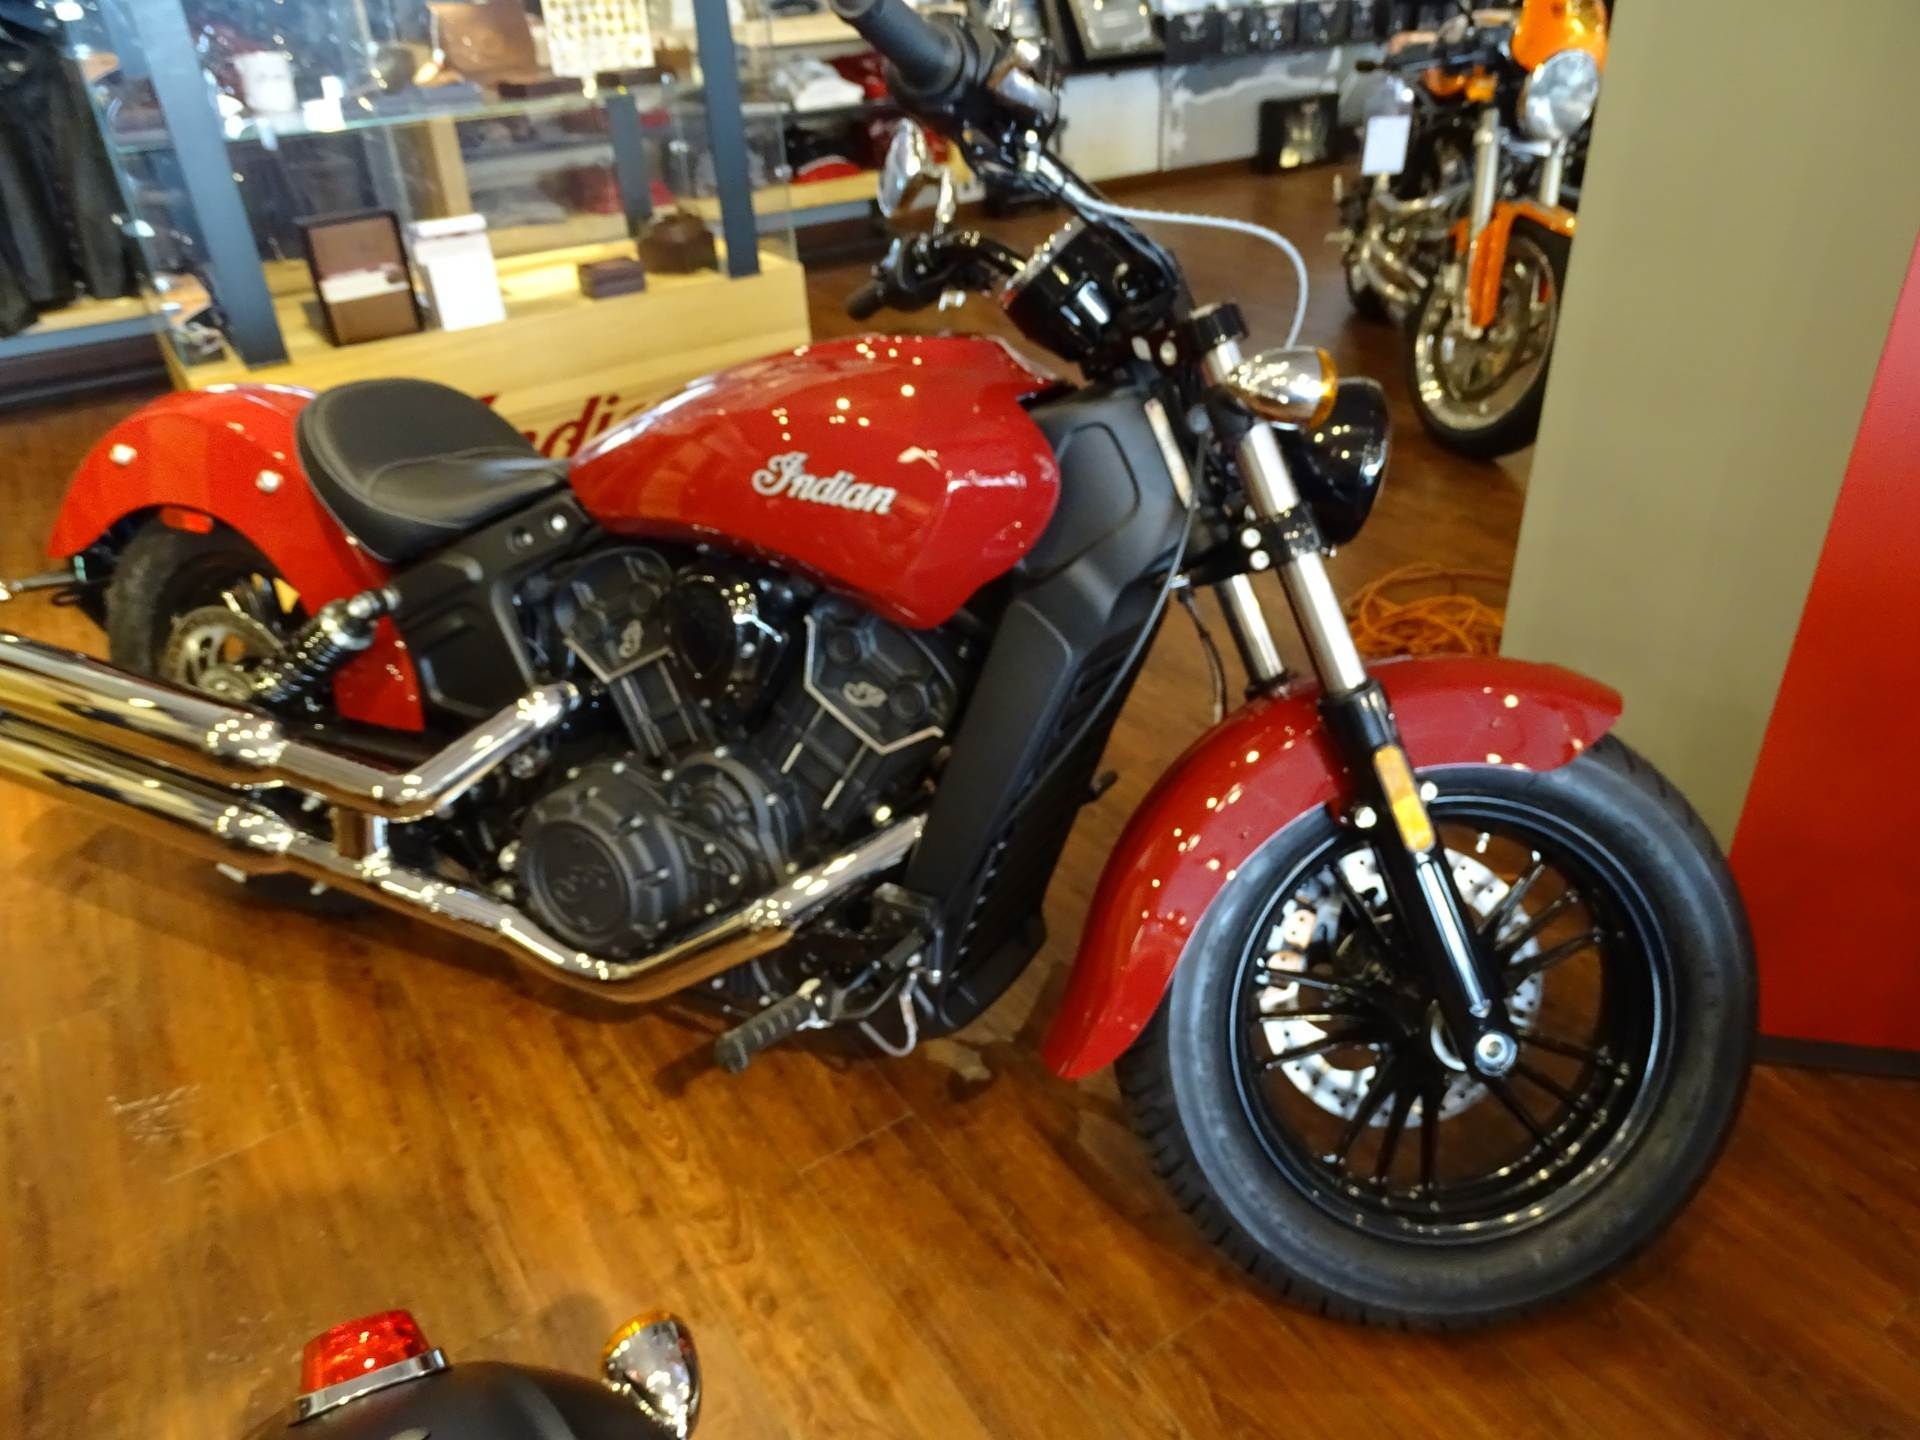 2017 Indian Scout Sixty ABS 2